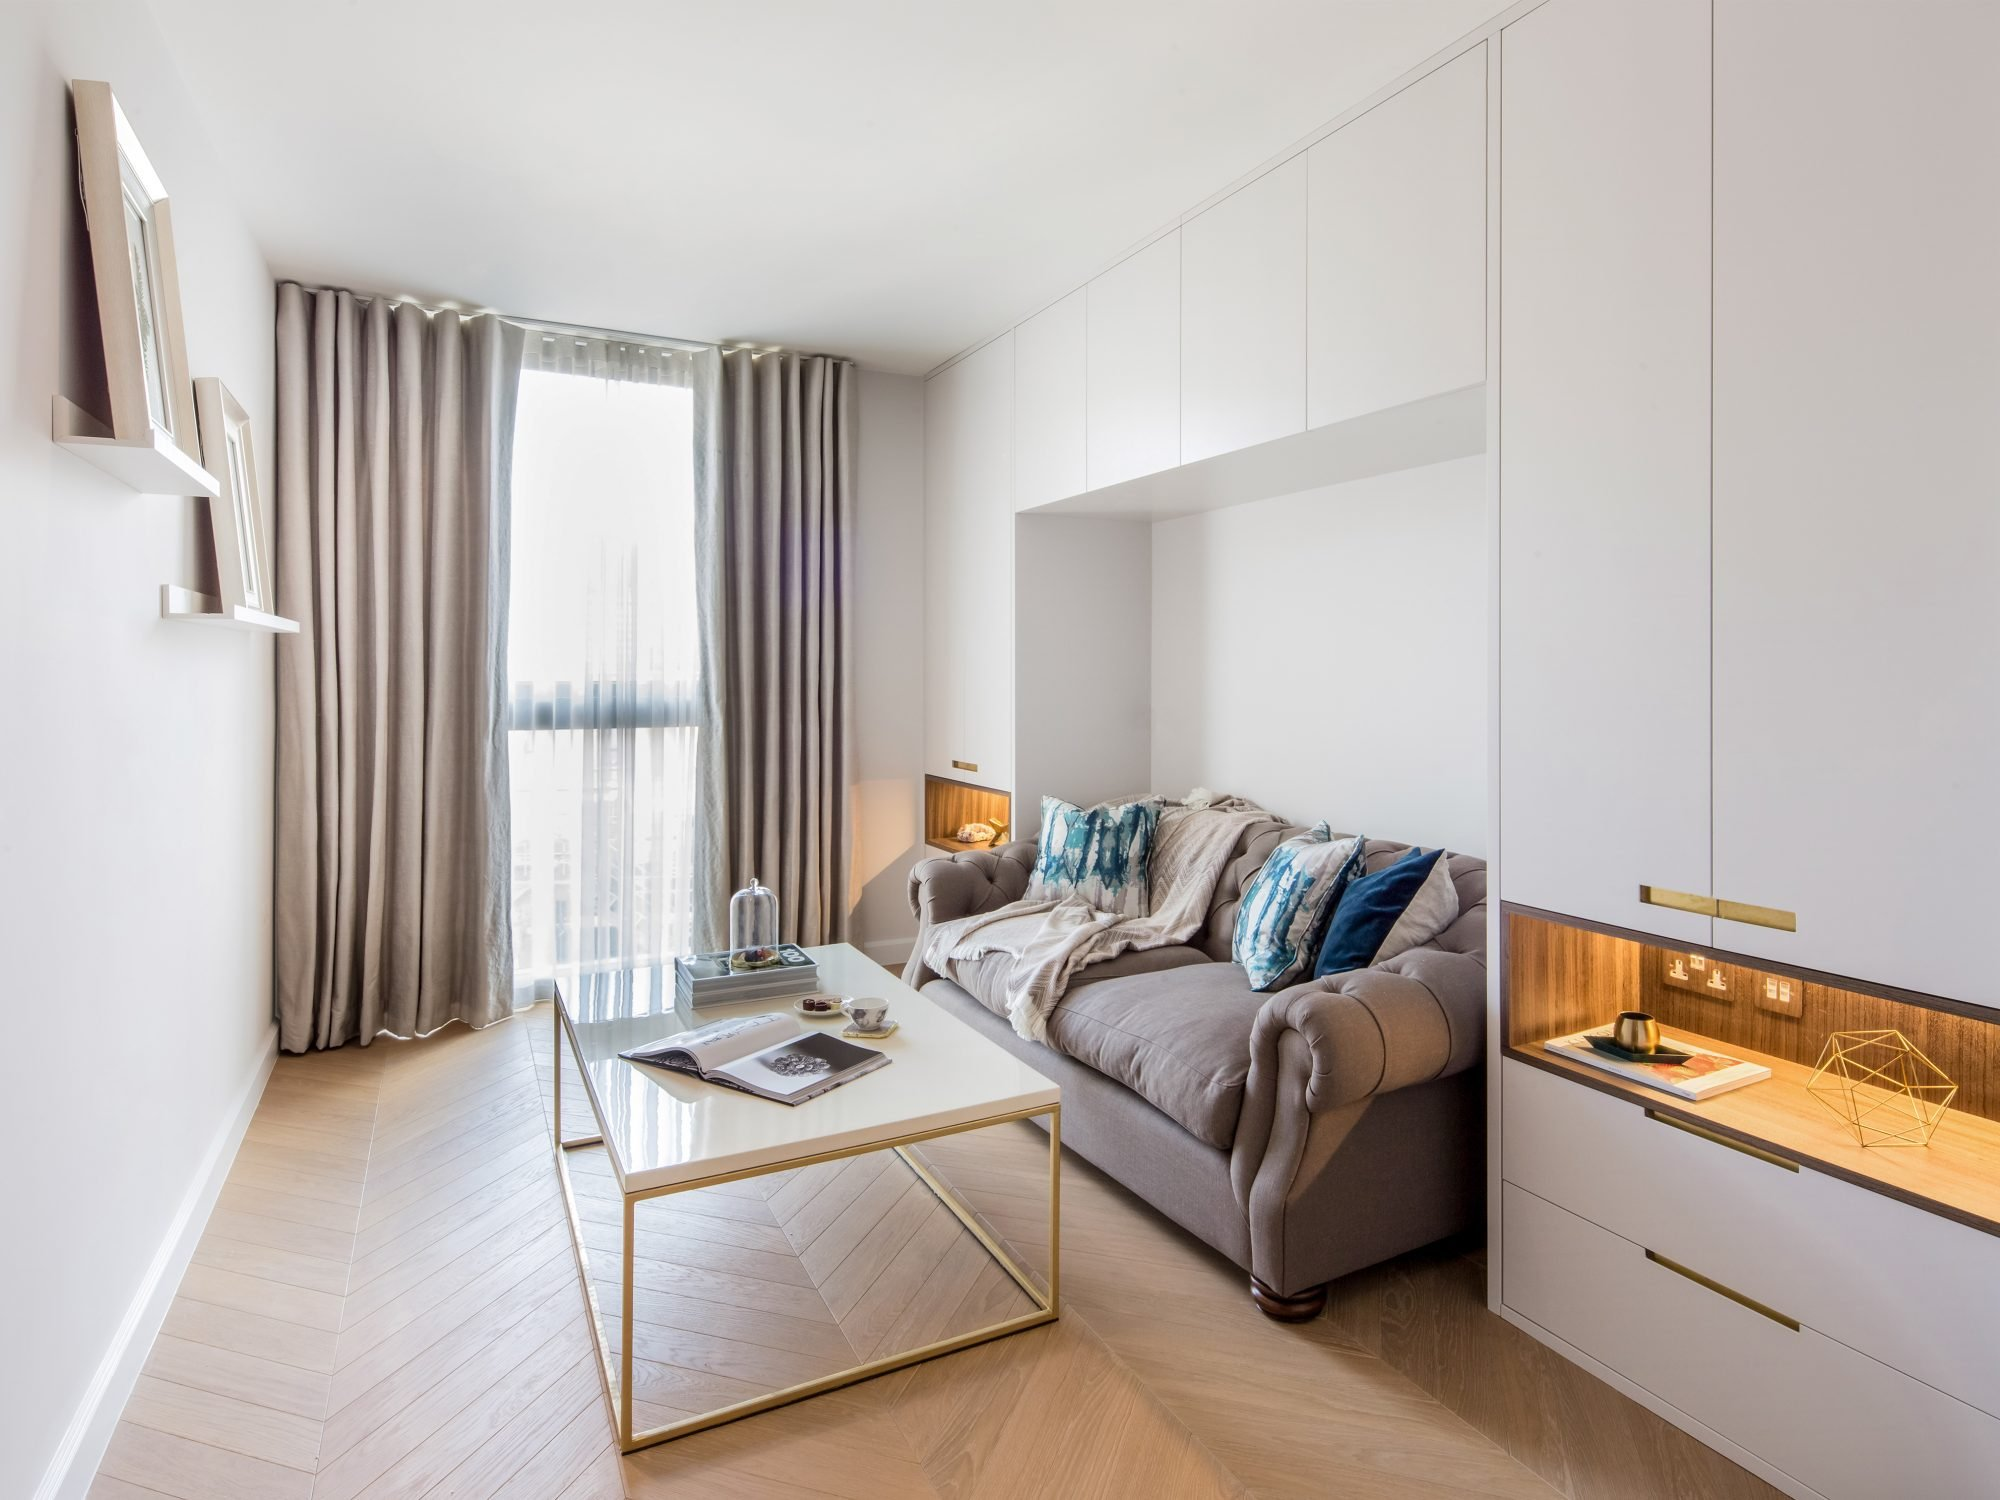 residential painting and decorating services for light living room with walls and ceiling painted white, designer furniture in Westminster, London